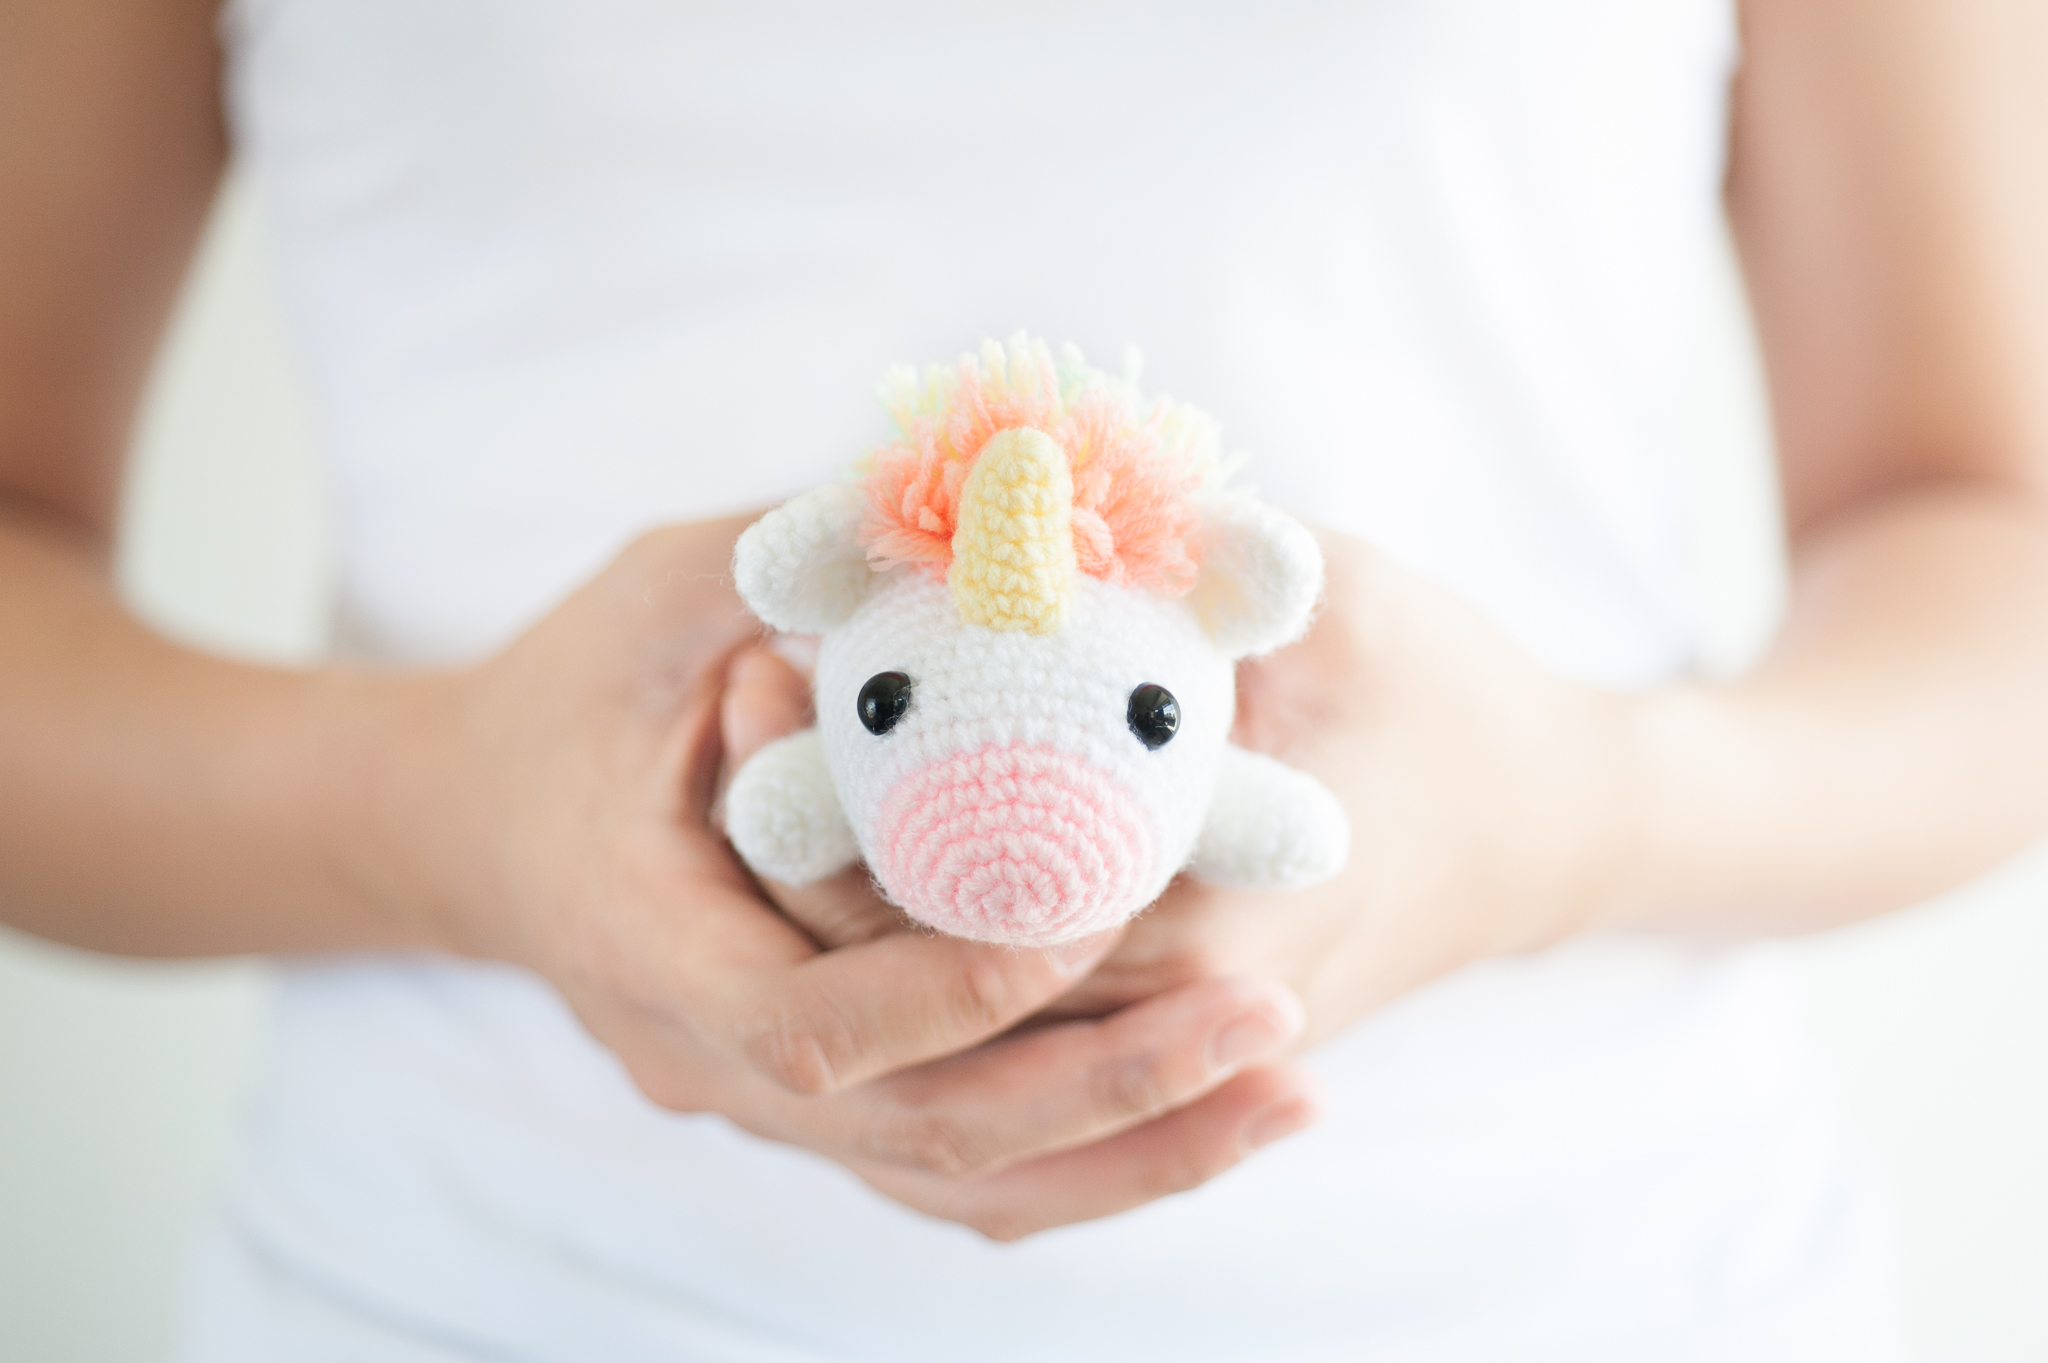 Amigurumi Crochet Artist Needed!